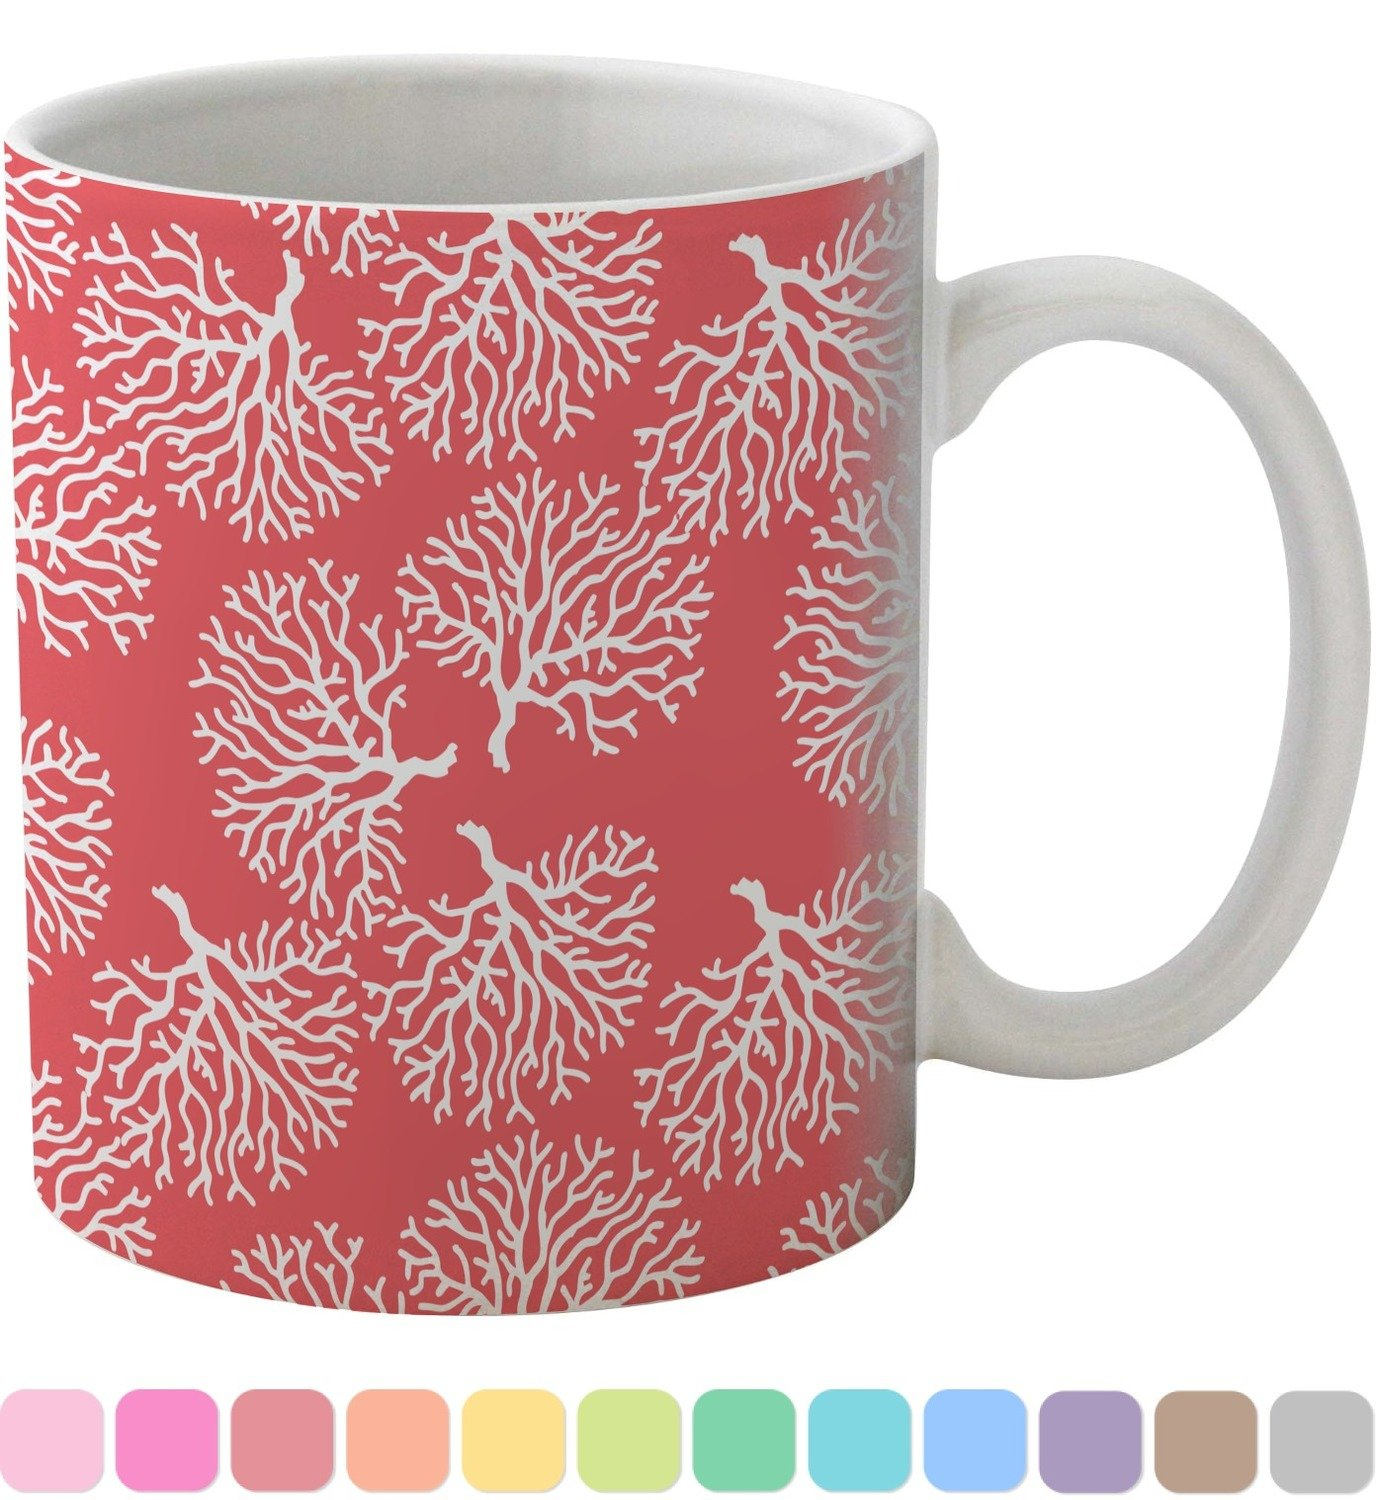 Amazon.com: Coral & Teal Coffee Mug (Personalized): Kitchen & Dining